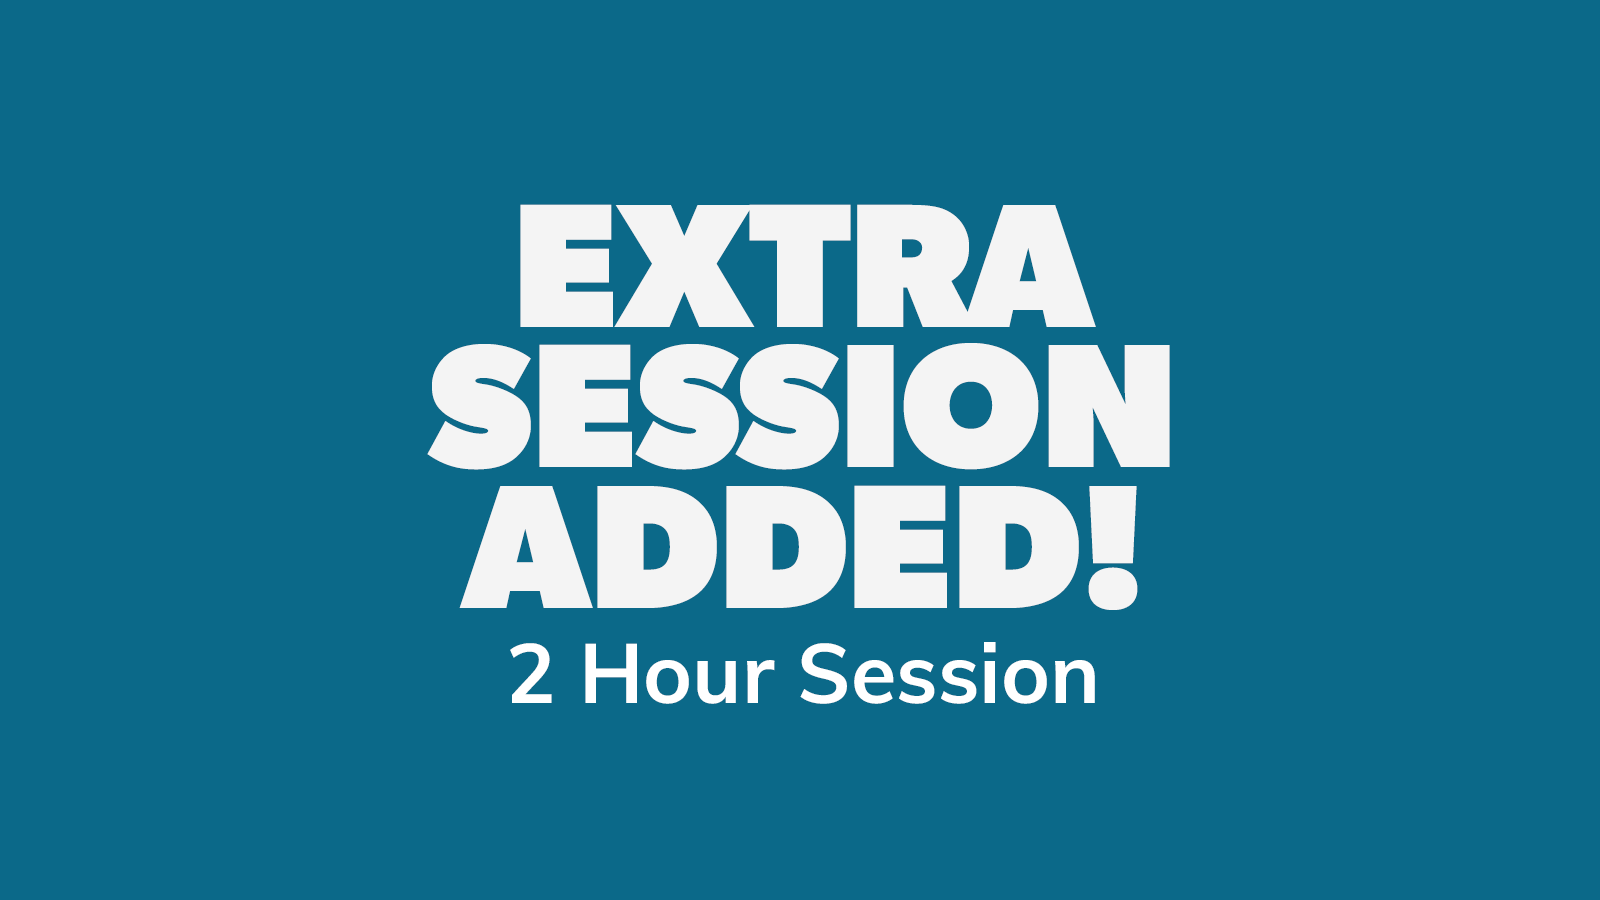 Chow Down: Thursday 24th June 2021 – 2 HOUR SESSION